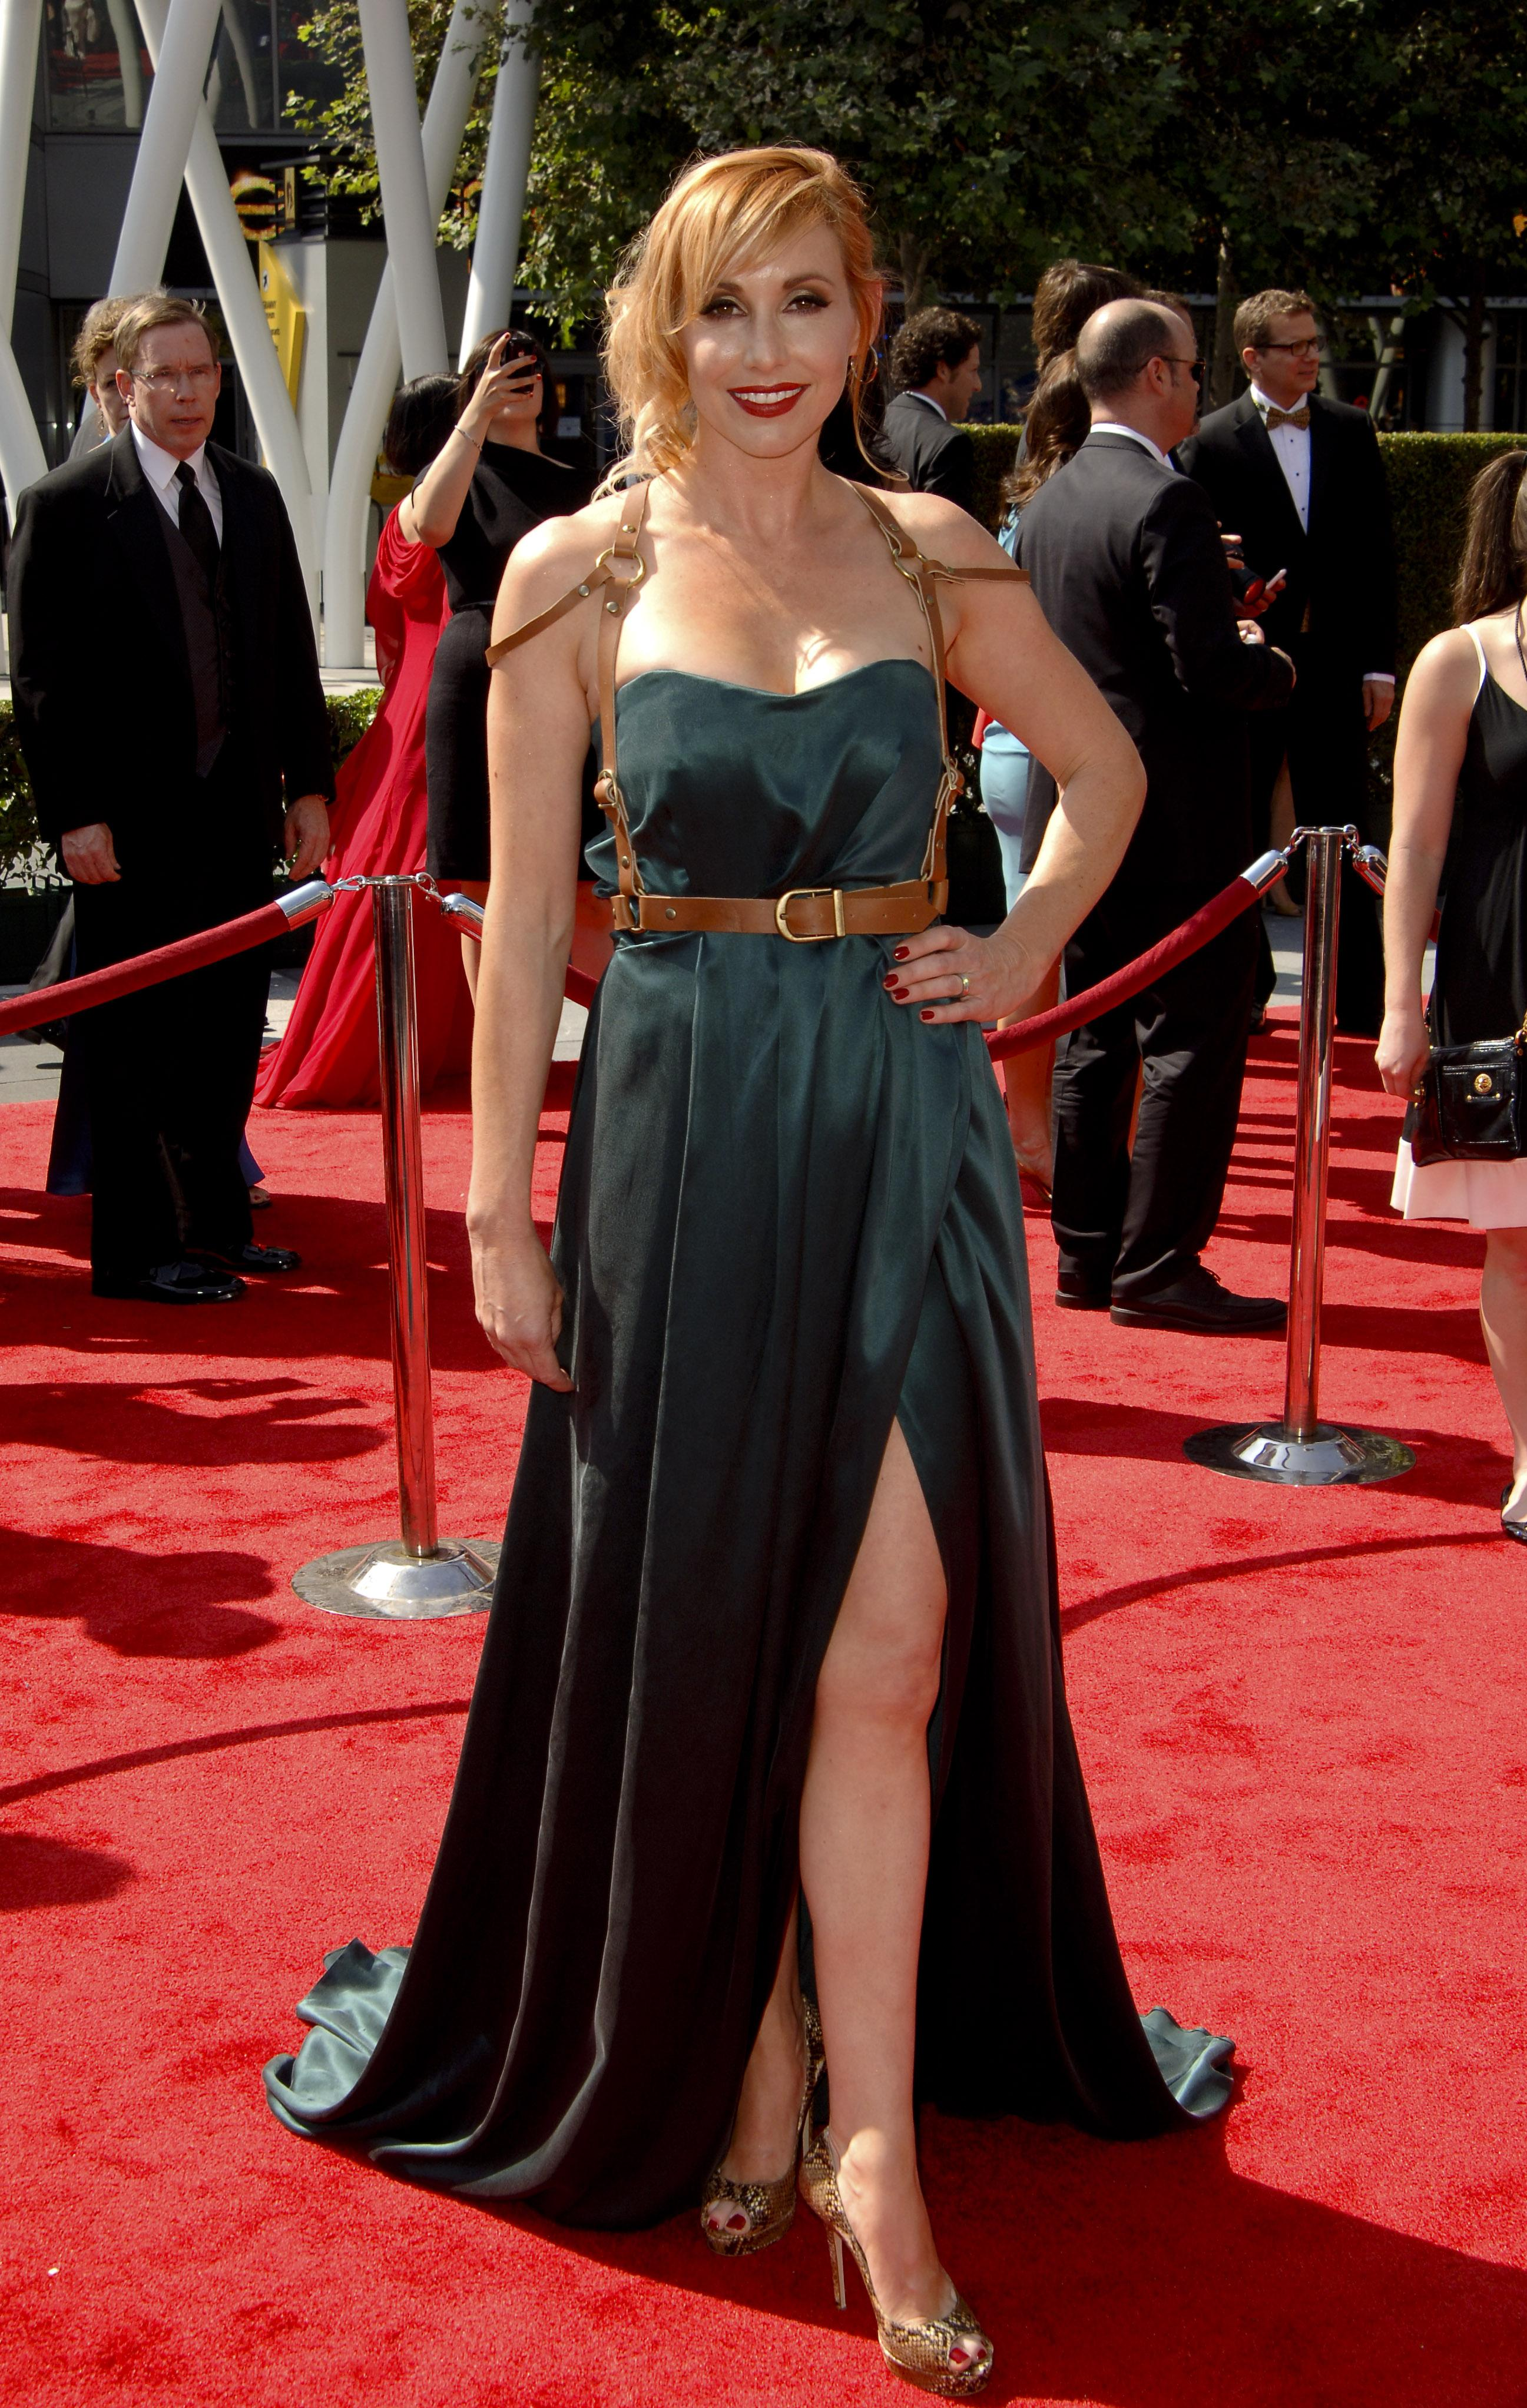 Kari Byron Hot Pictures, Leaked Near-Nude Photos